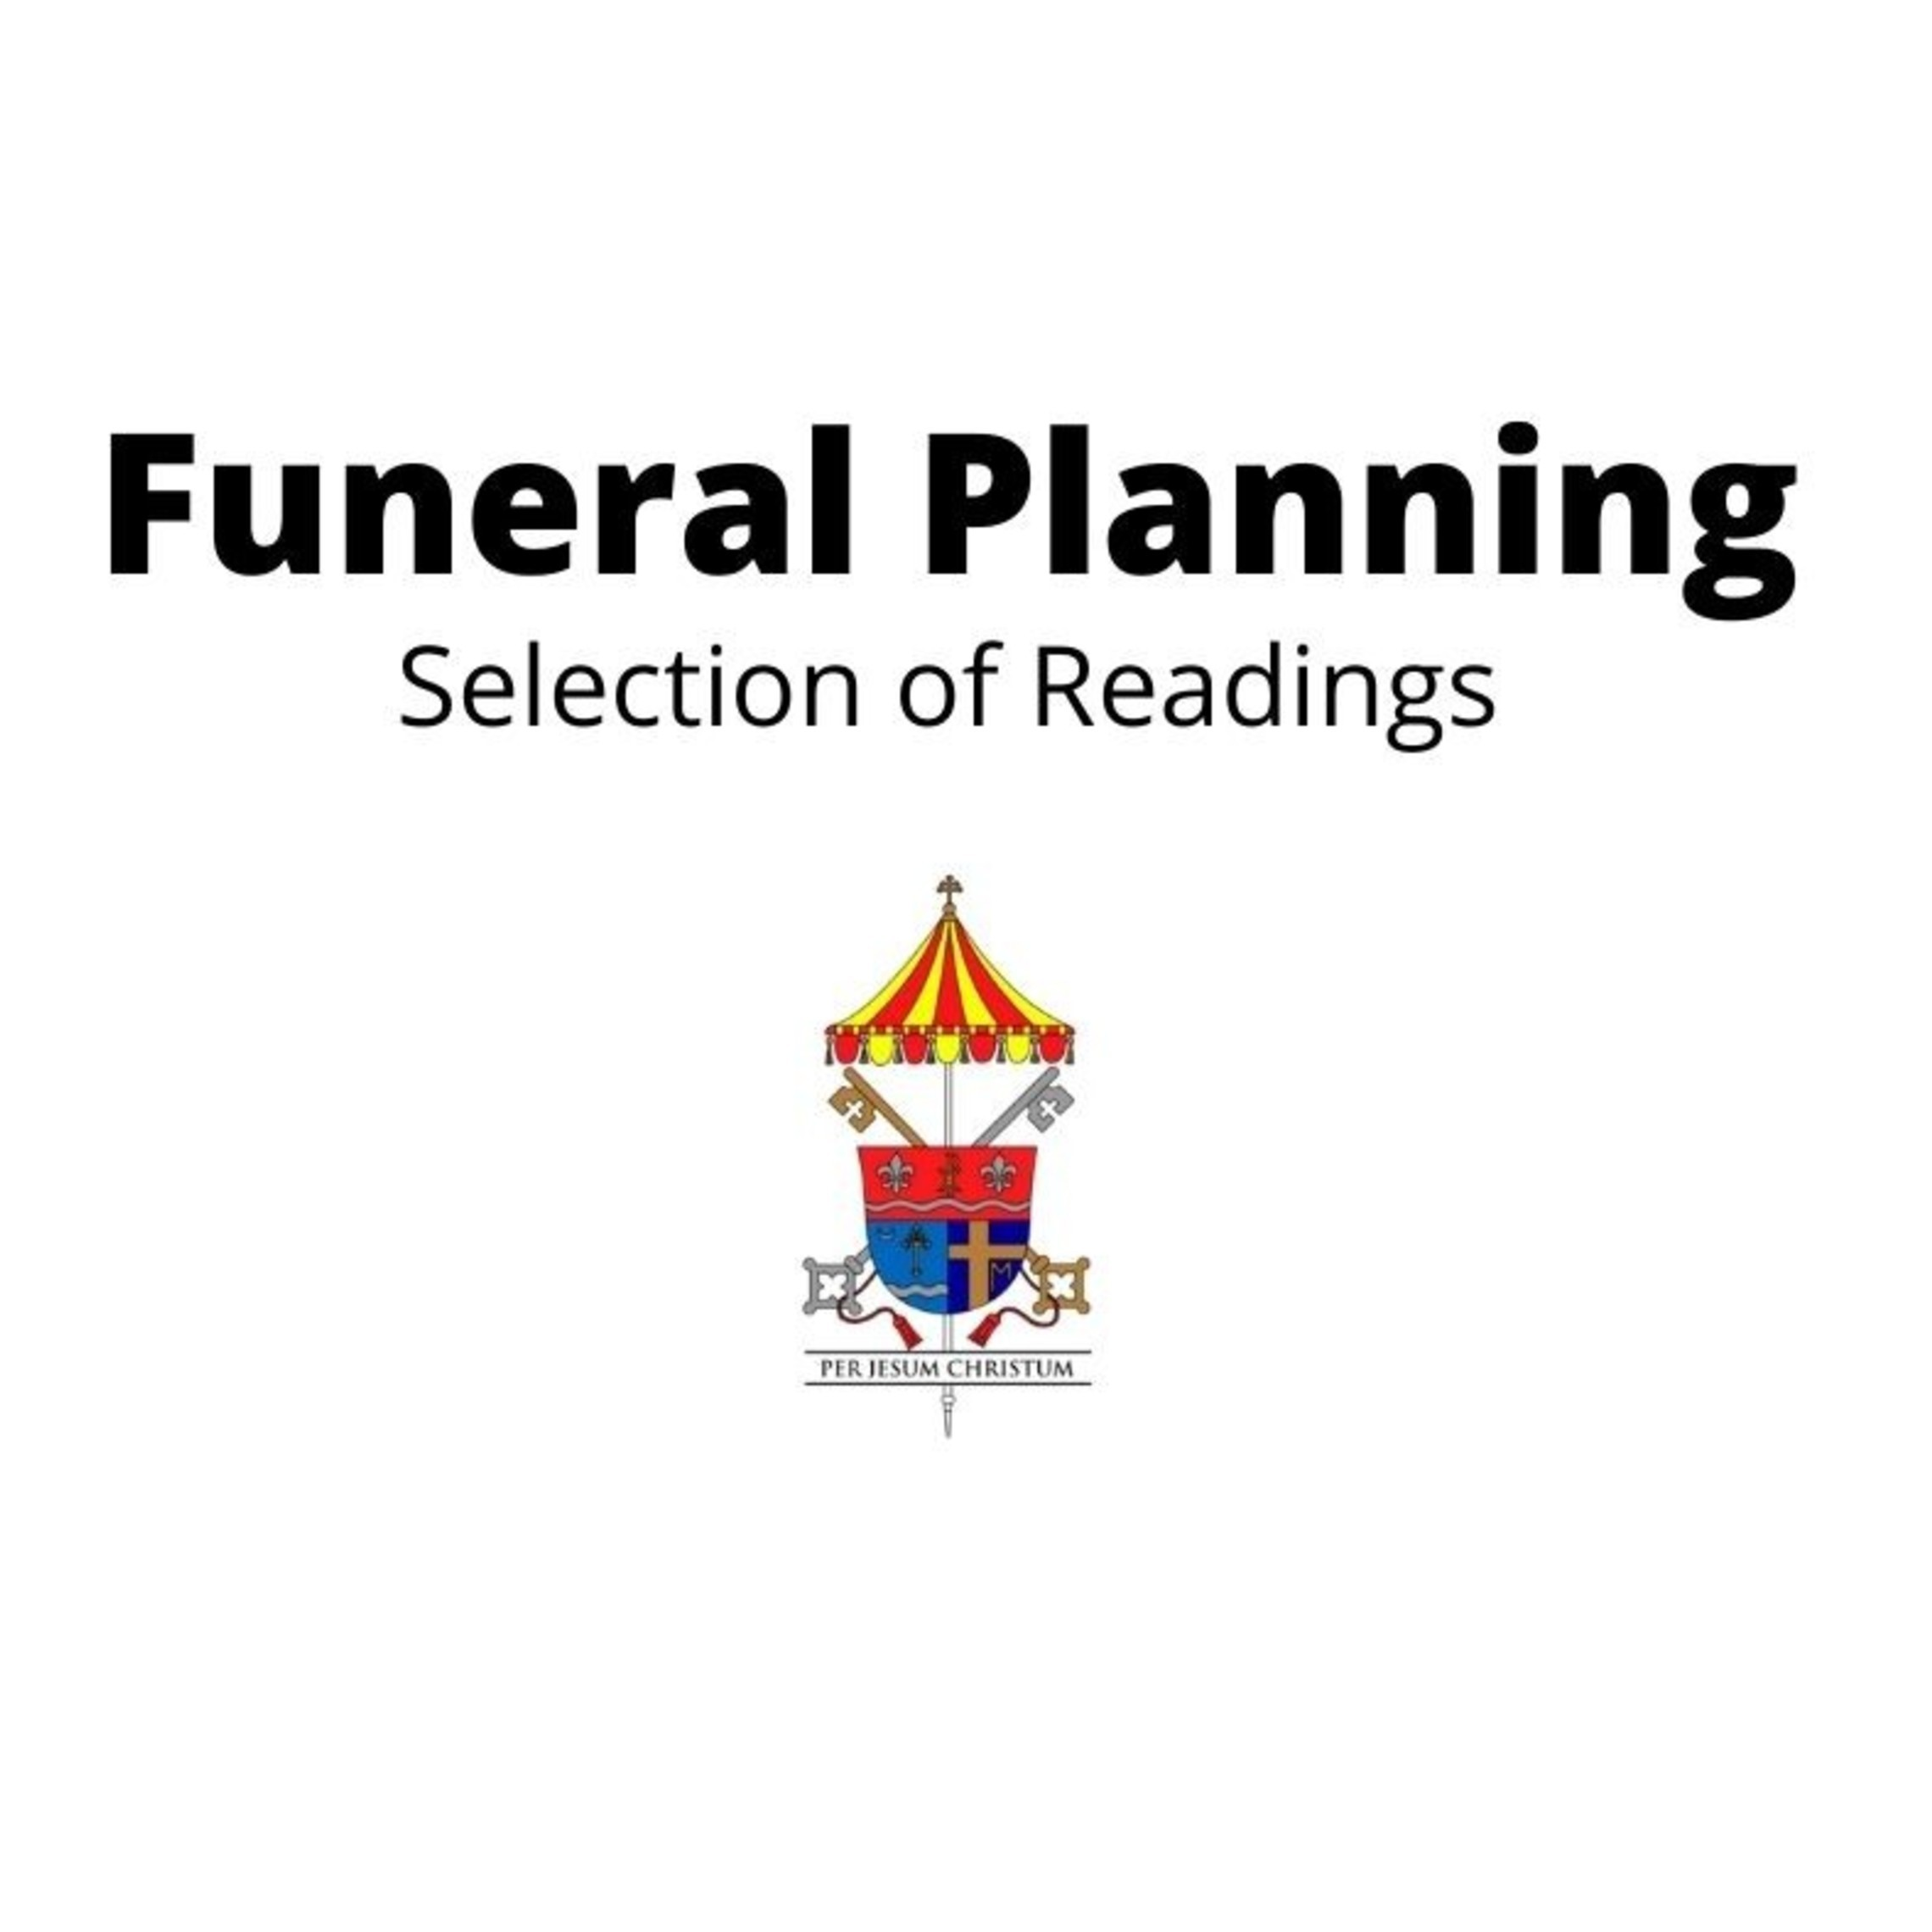 Funeral Planning 1